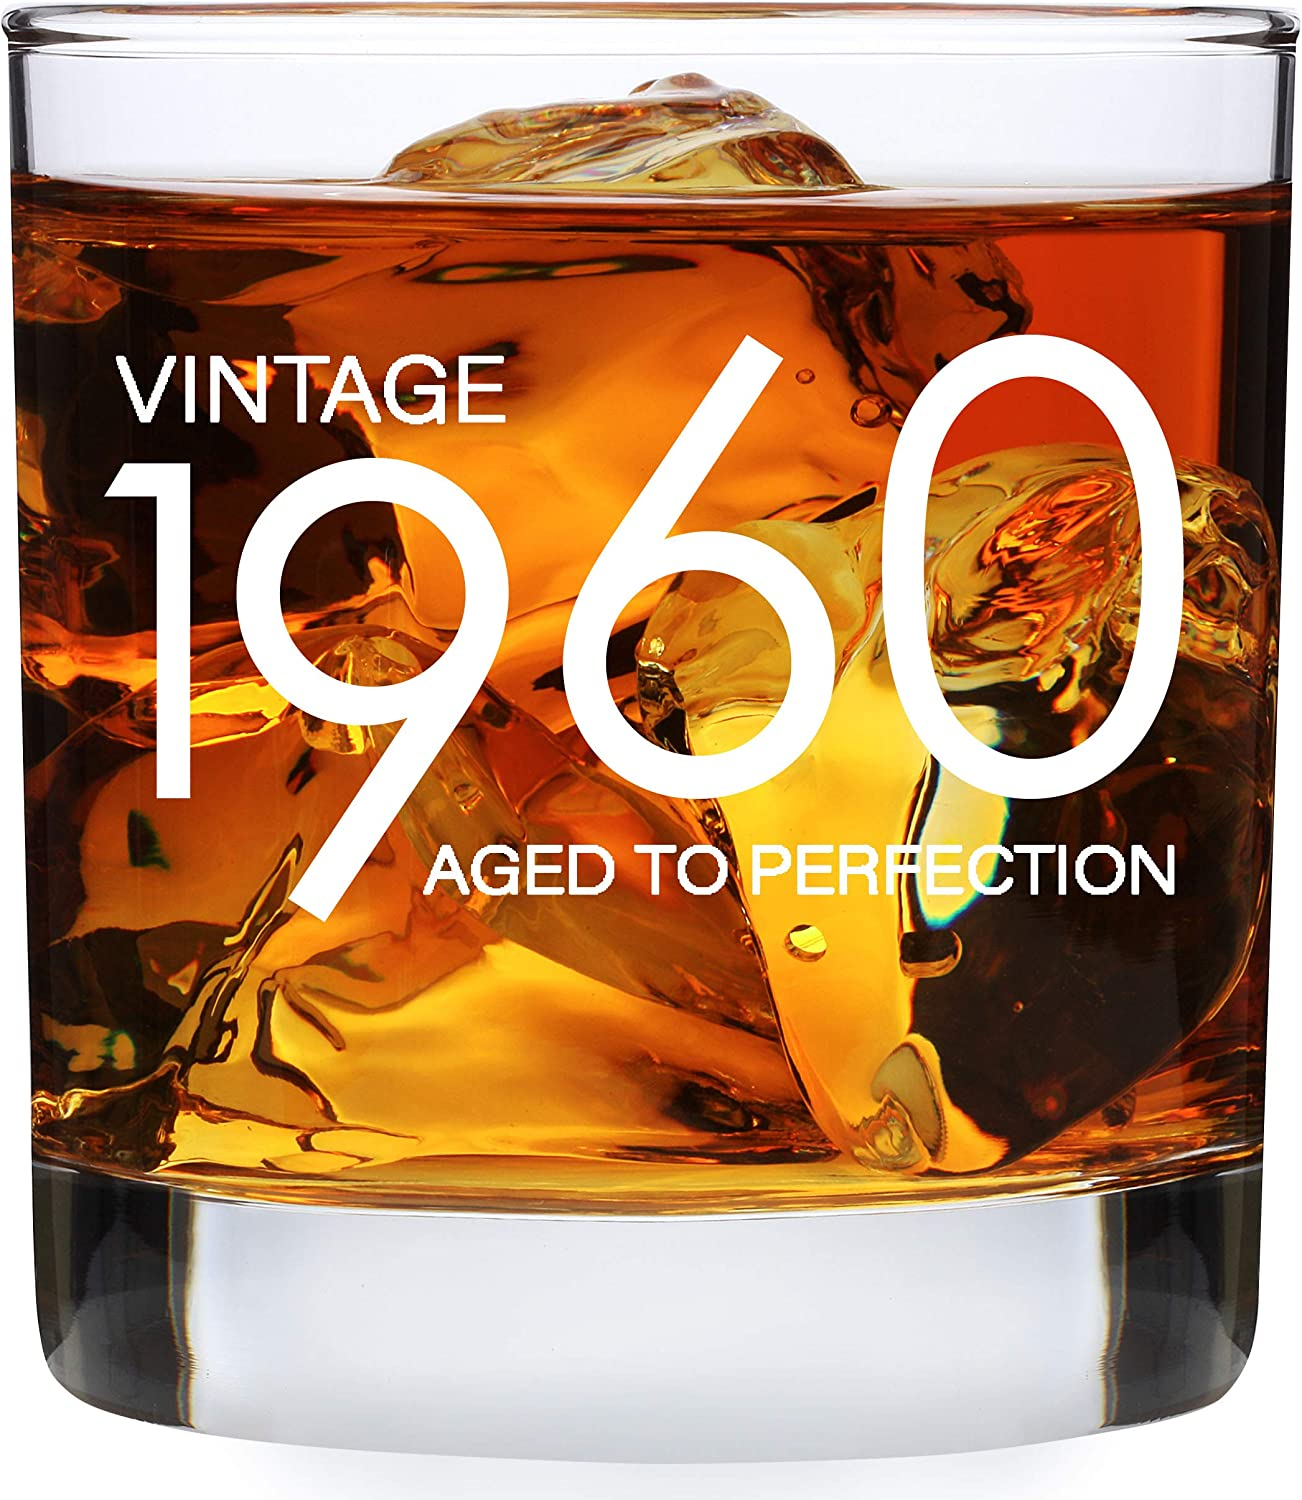 1960 60th Birthday Gifts For Men Women 11 Oz Whiskey Bourbon Lowball Glass Funny Sixtieth Vintage 60 Year Old Present Ideas For Him Her Dad Mom Husband Wife Whisky